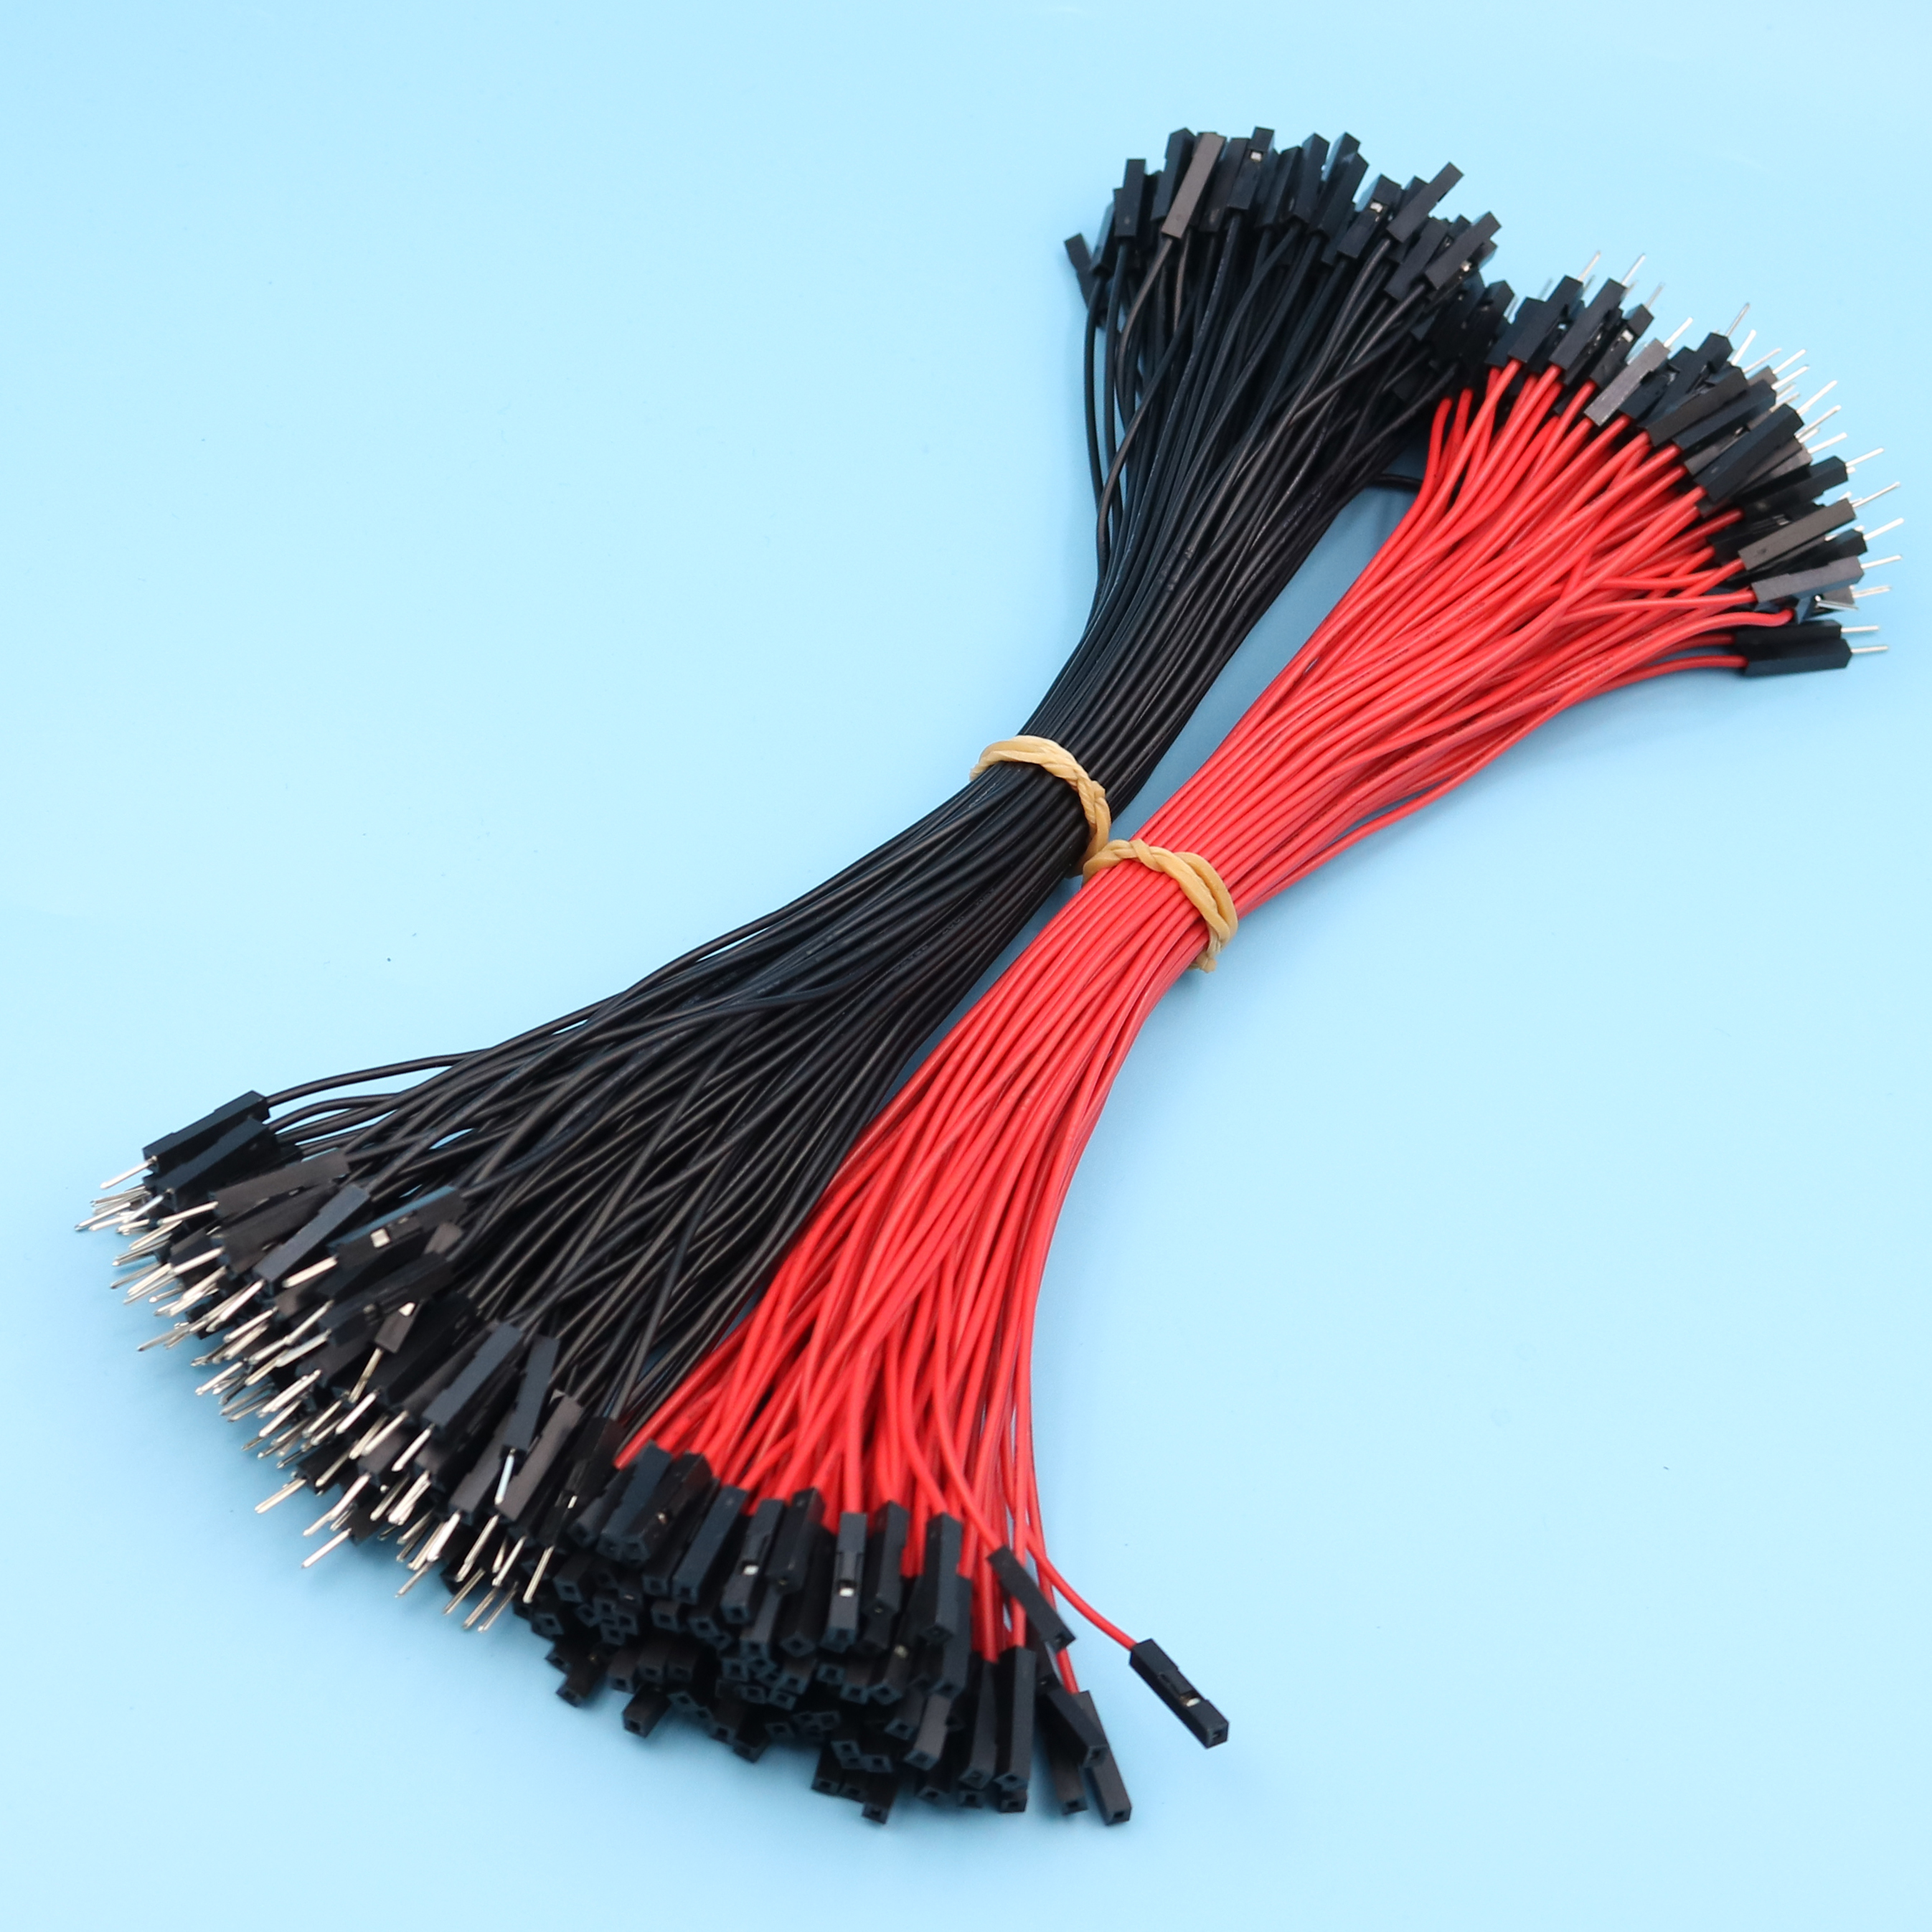 50pcs 20cm Single 1P-1P Male to Female Jumper Wire Dupont Cable Ribbon